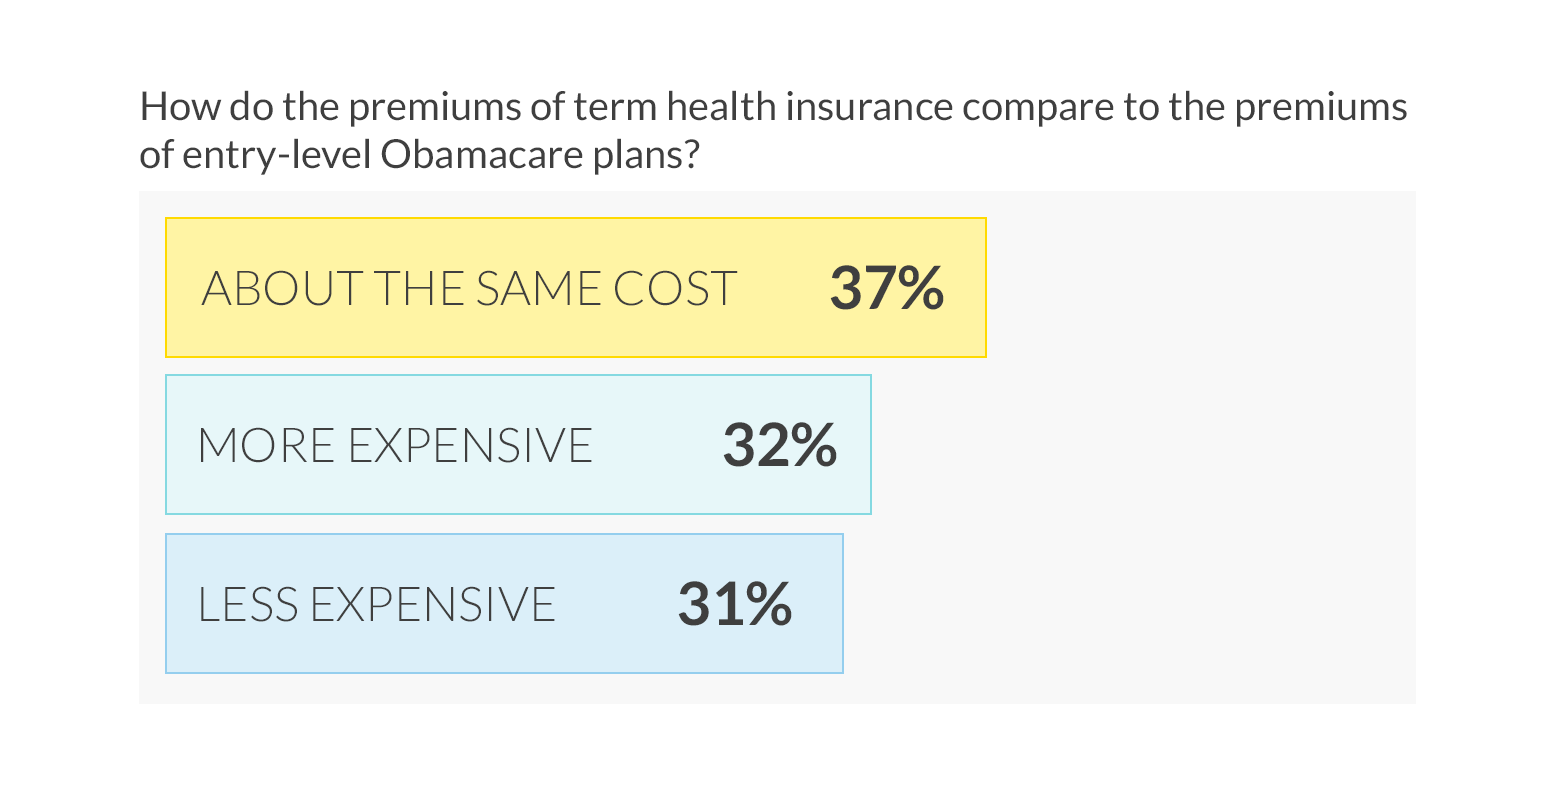 69% of the US incorrectly believe Short Term health insurance premiums are same or greater than Obamacare plan premiums.